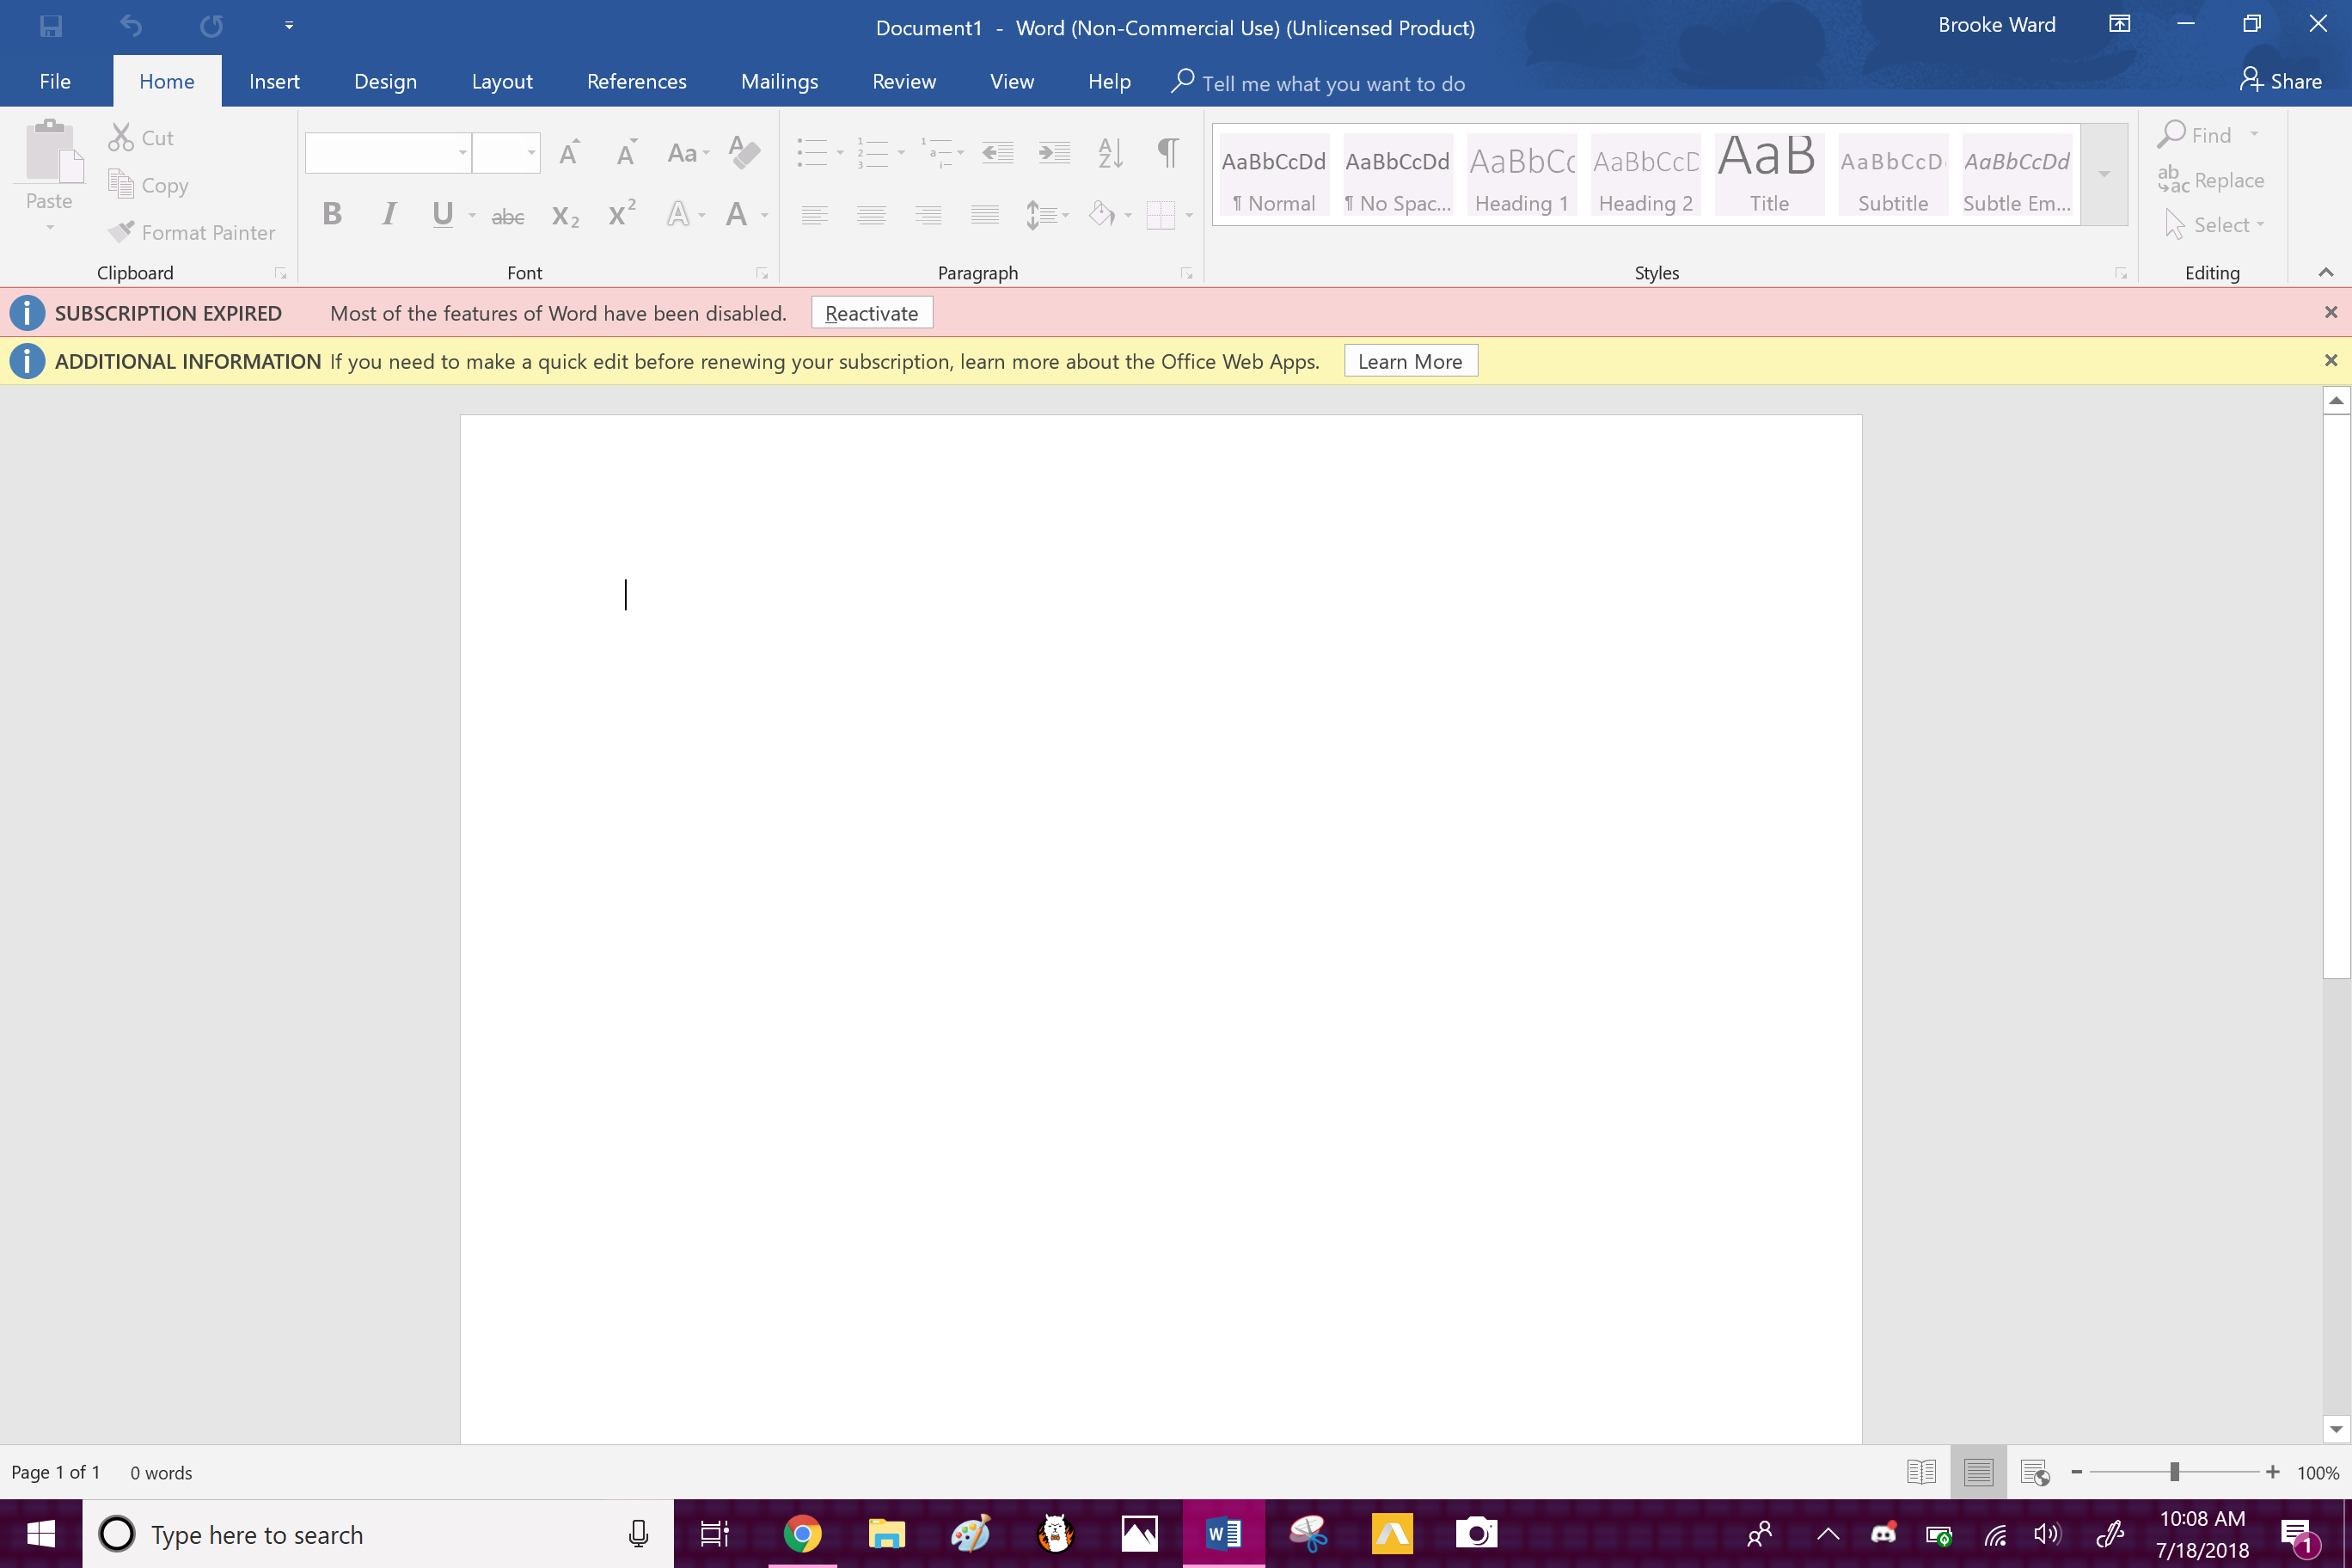 Why do I have to buy Office 365 just to use Word on my computer